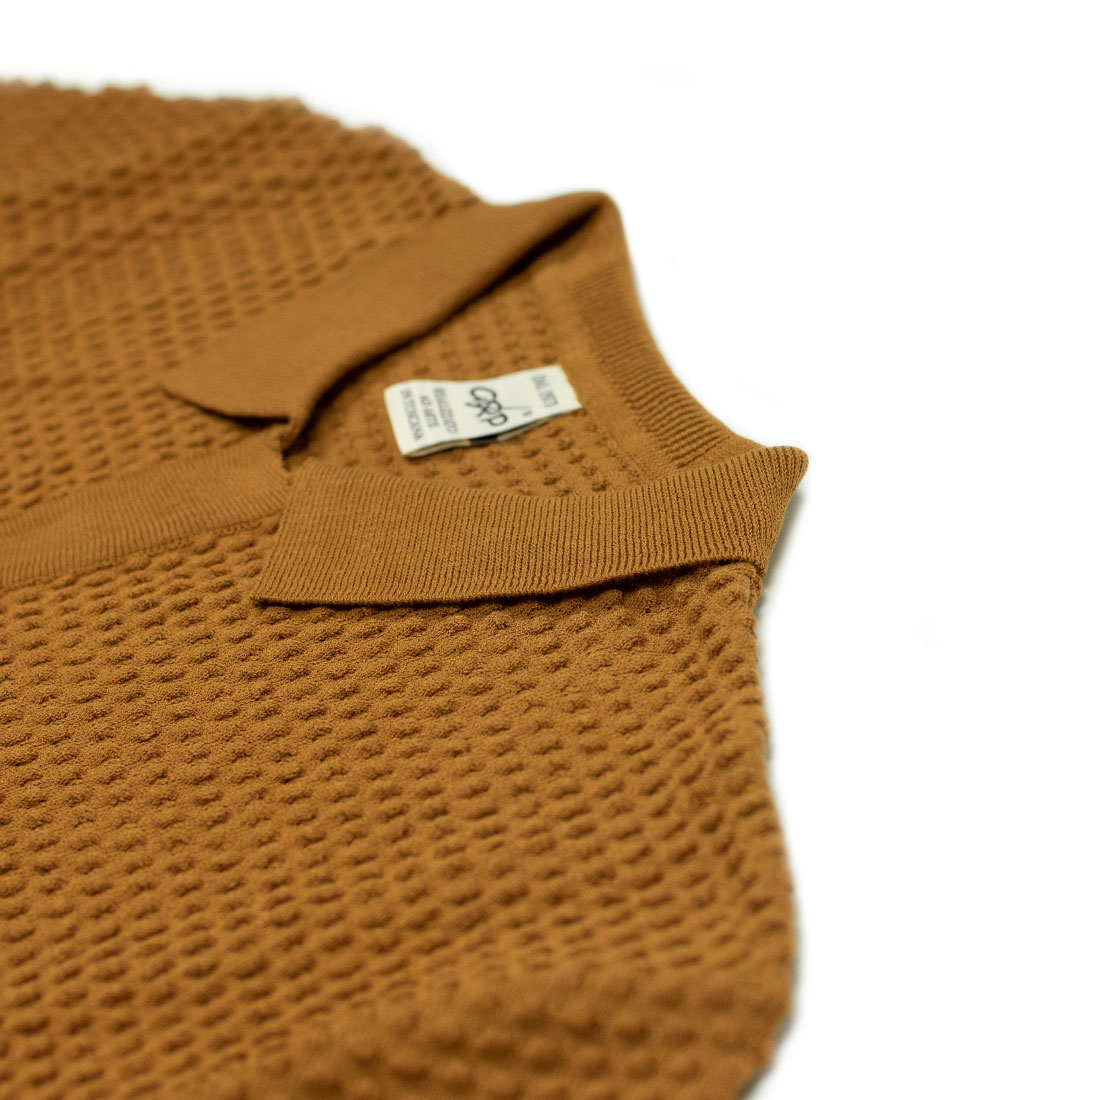 GRP Italy Spring Summer 2021 SS21 button stitch cotton knit polo (10).jpg